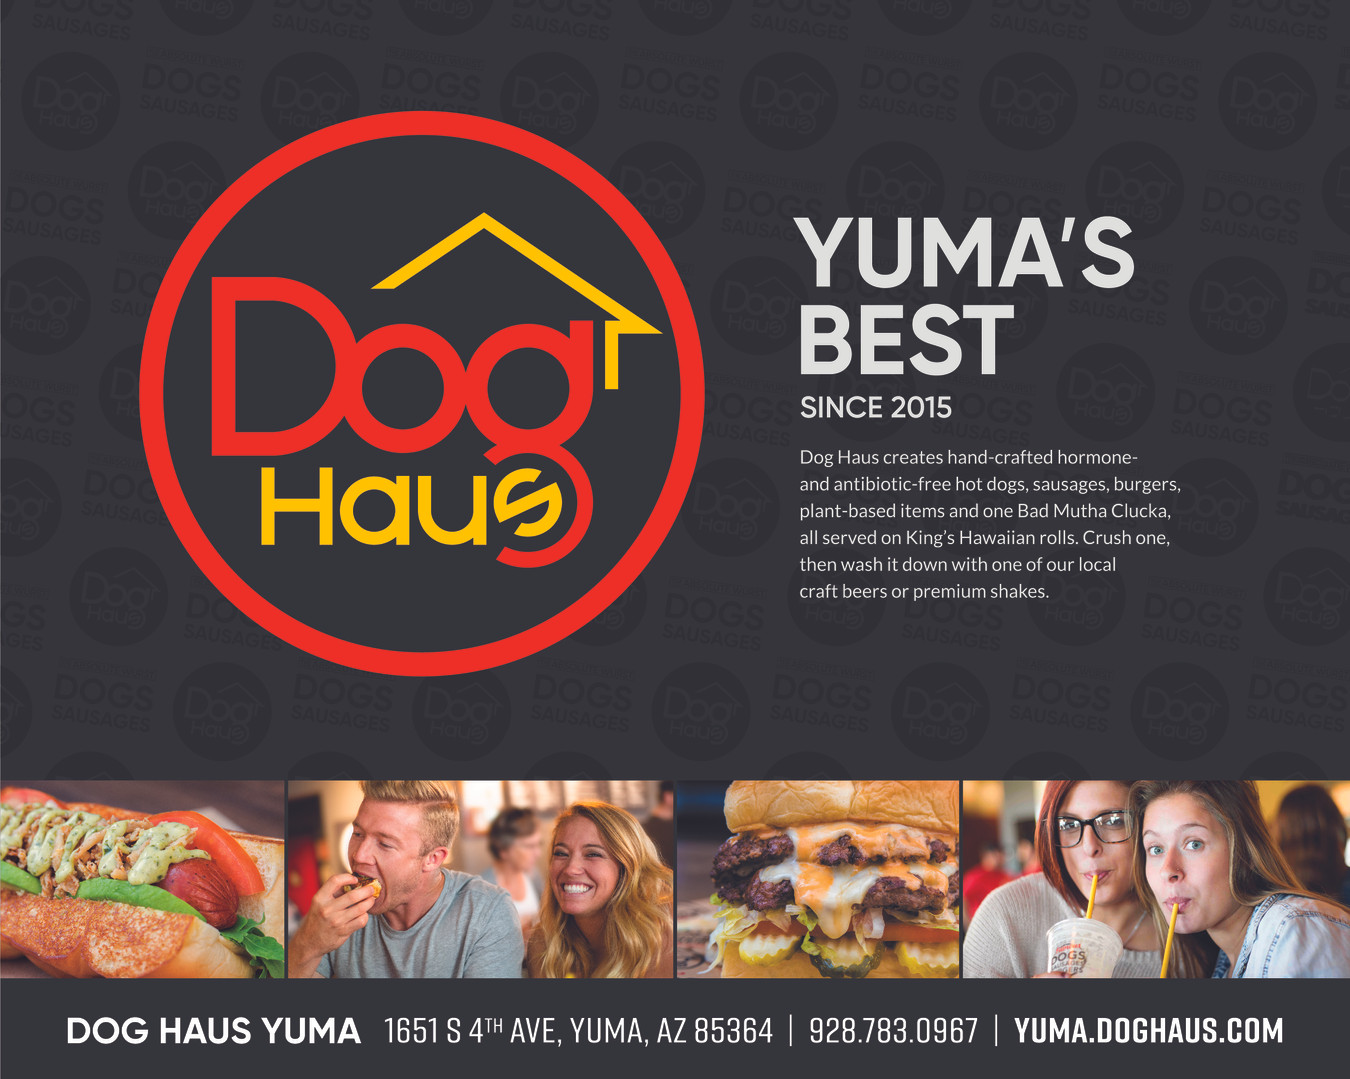 Dog Haus Yuma